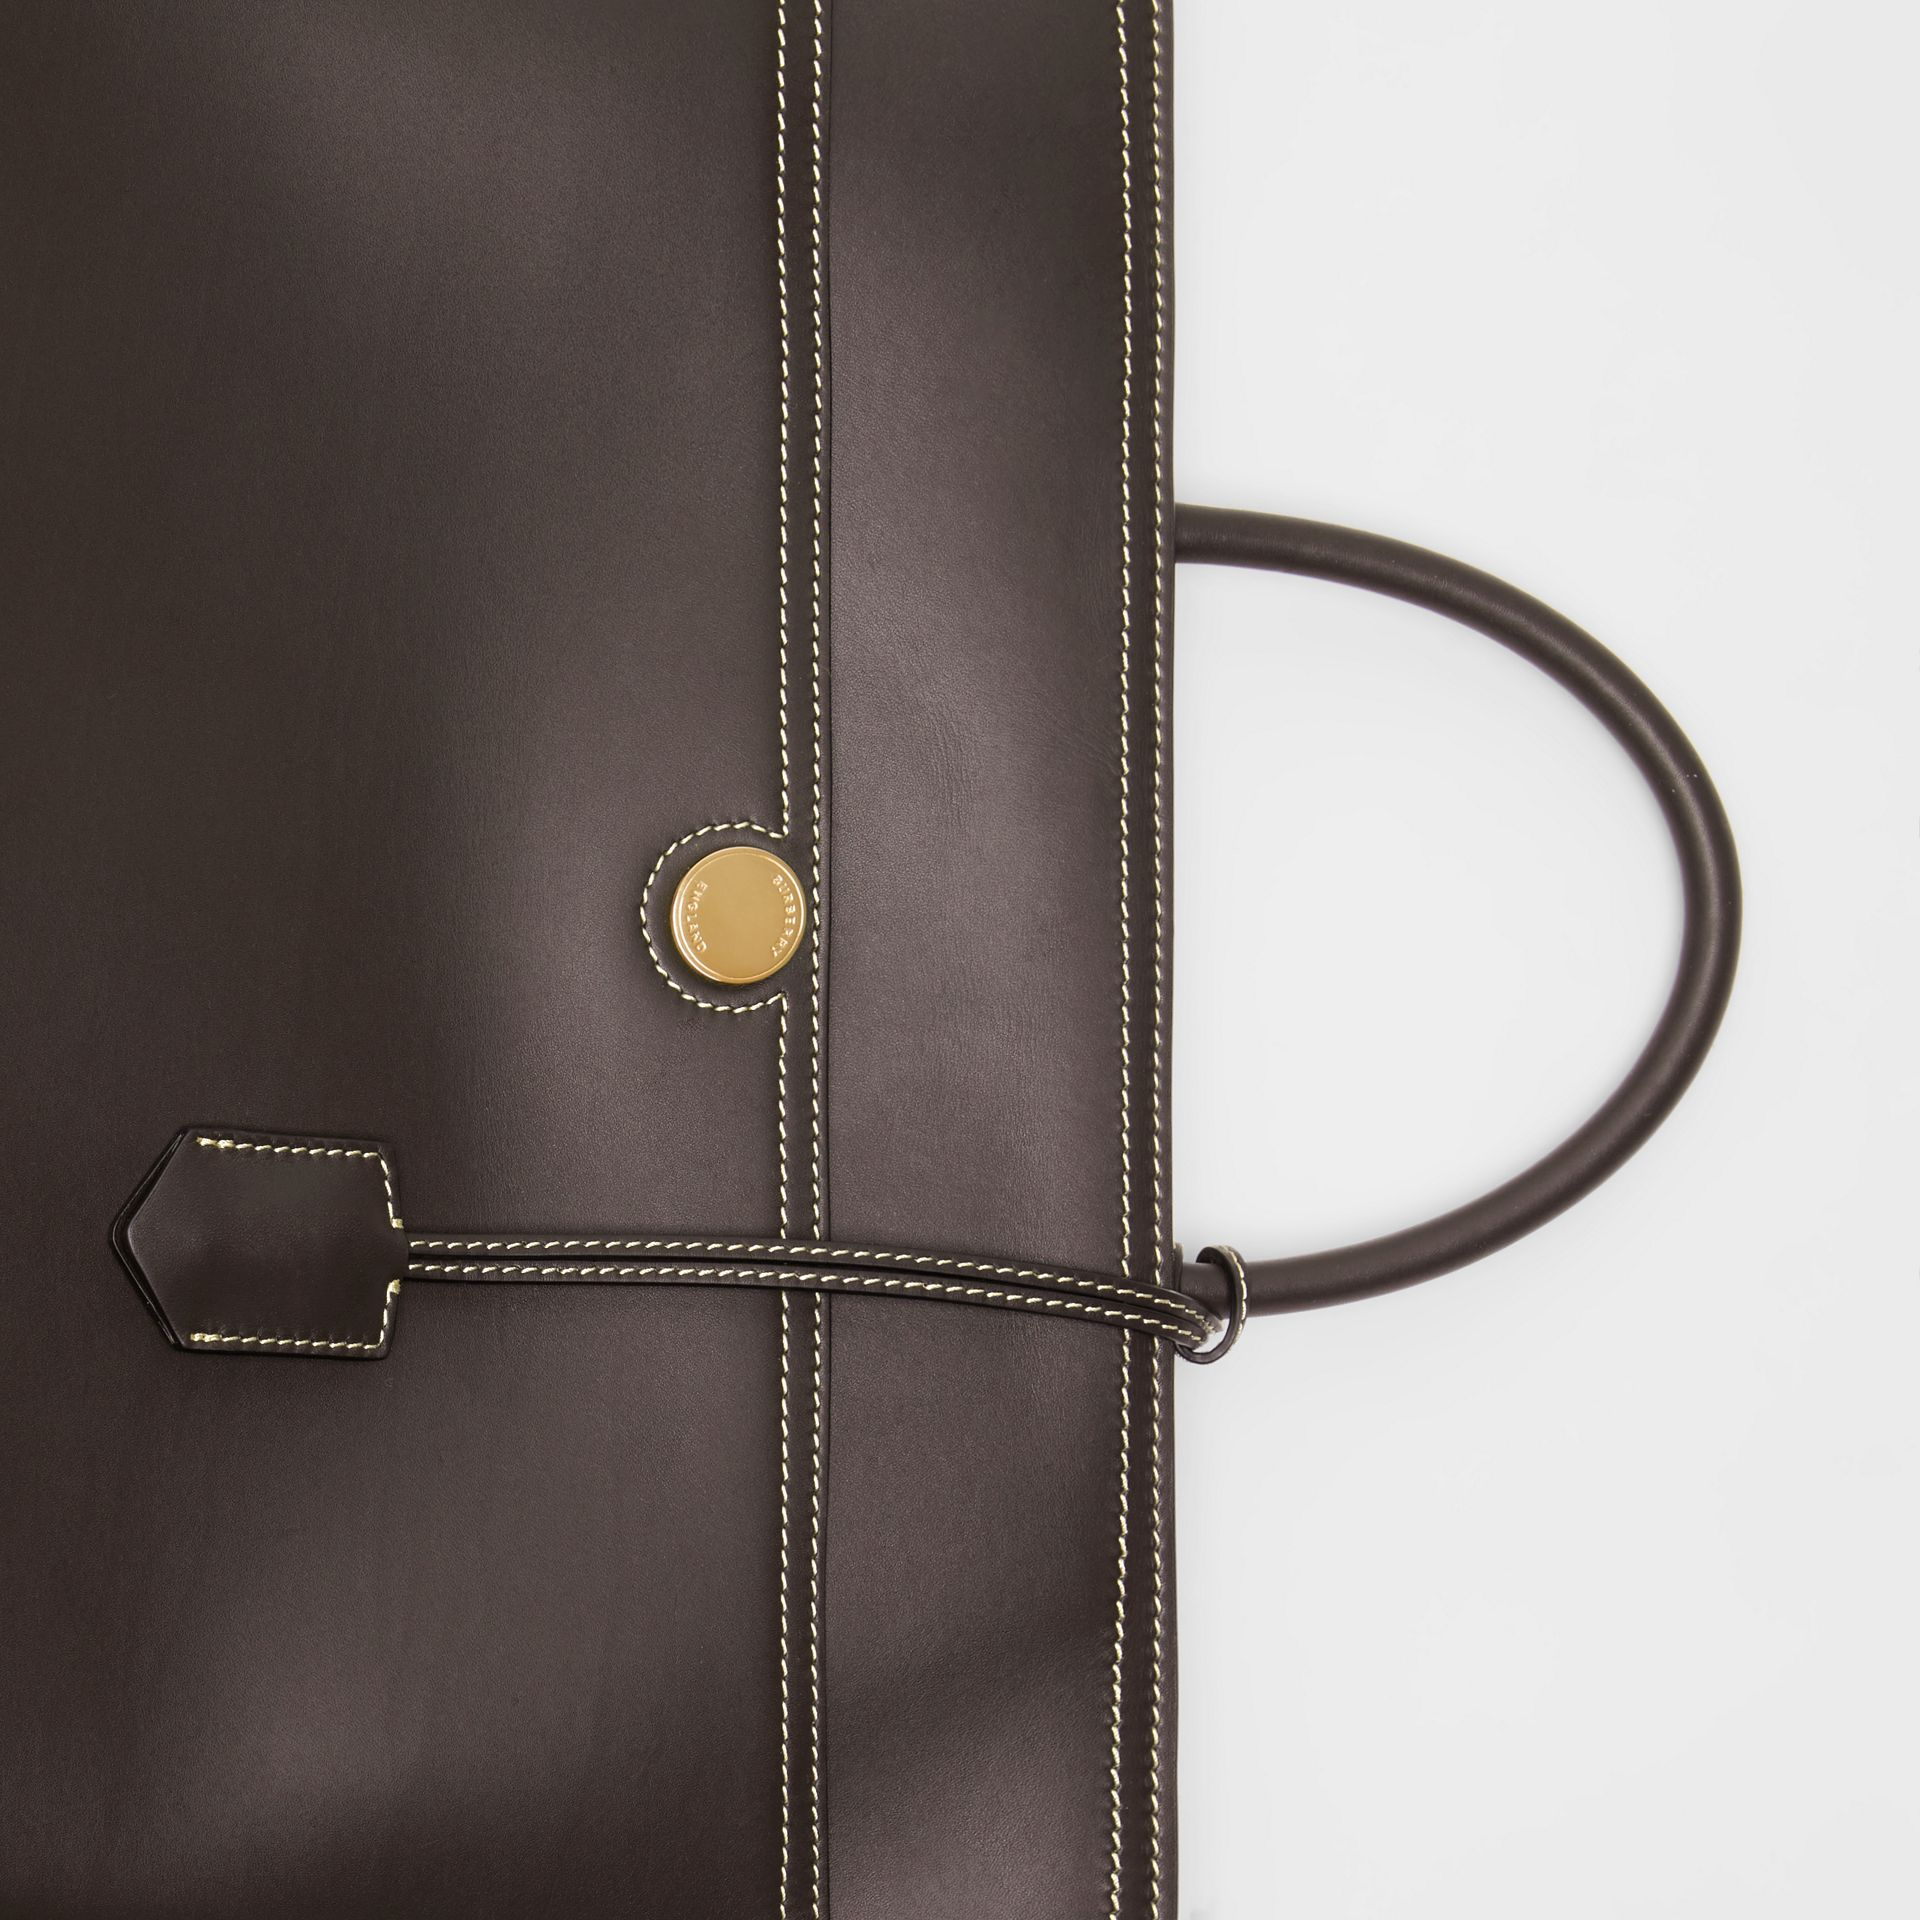 Leather Society Top Handle Bag in Coffee - Women | Burberry United States - gallery image 1